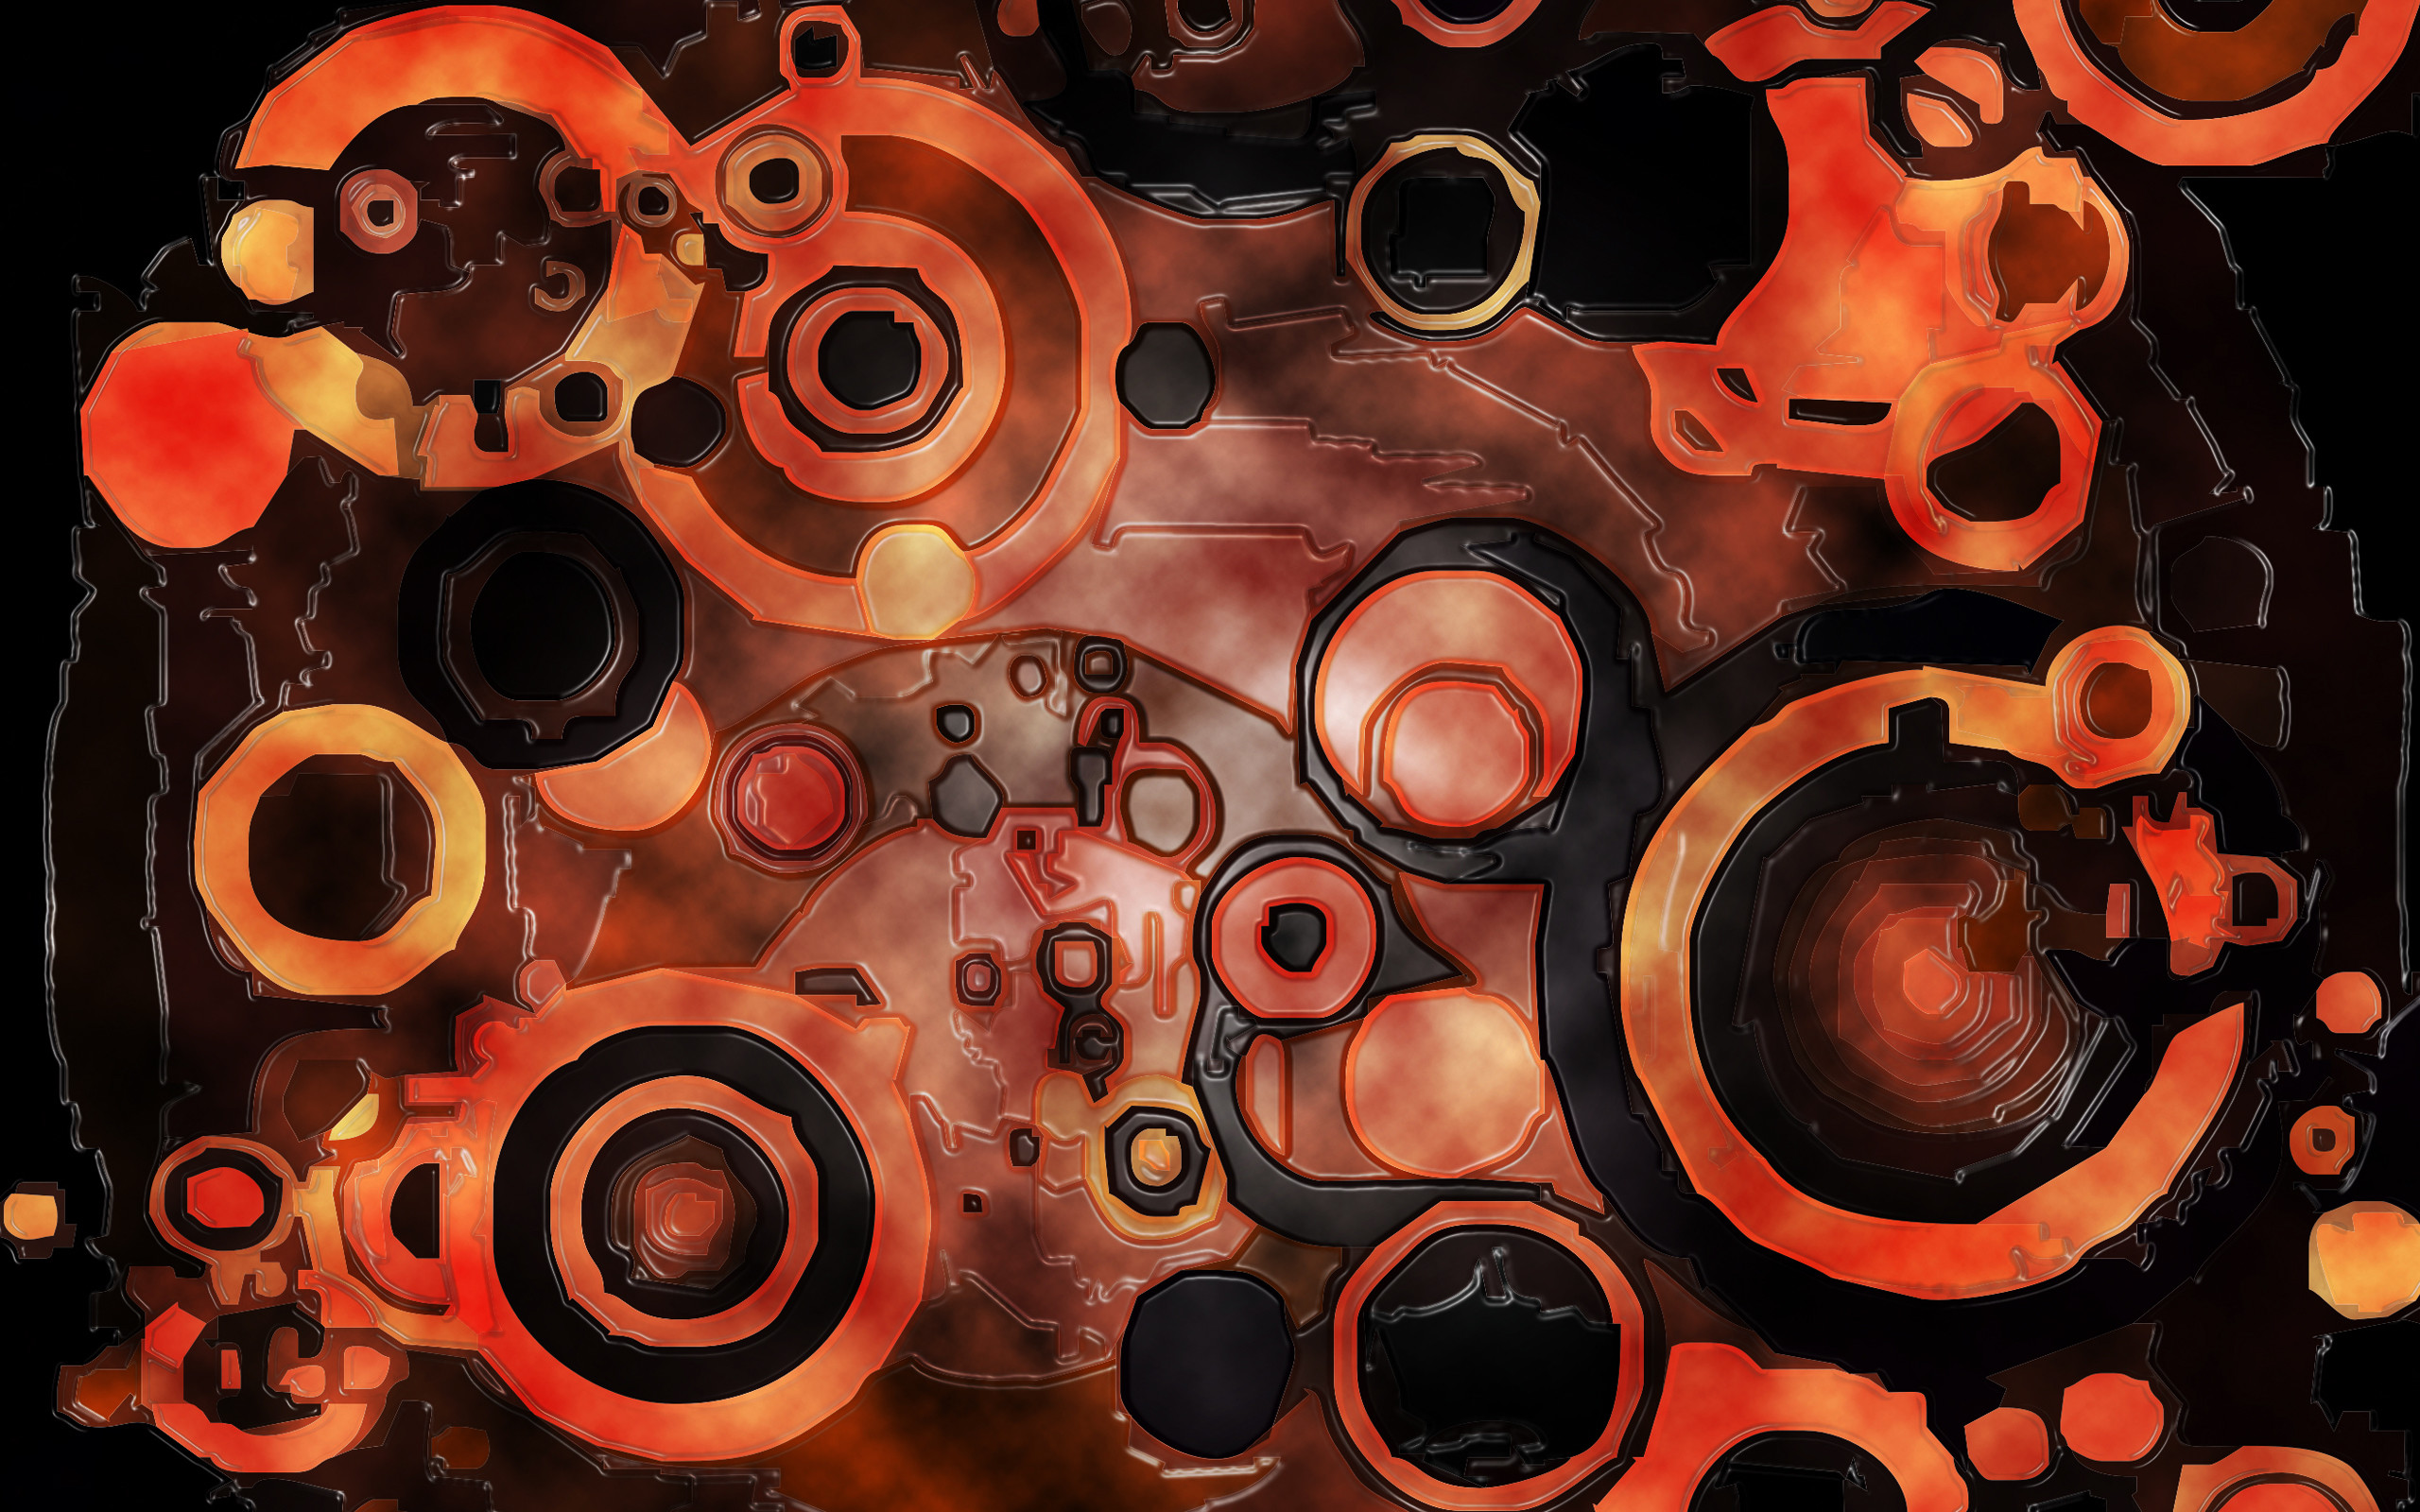 Abstract 3D Artistic Wallpaper in Orange and Black